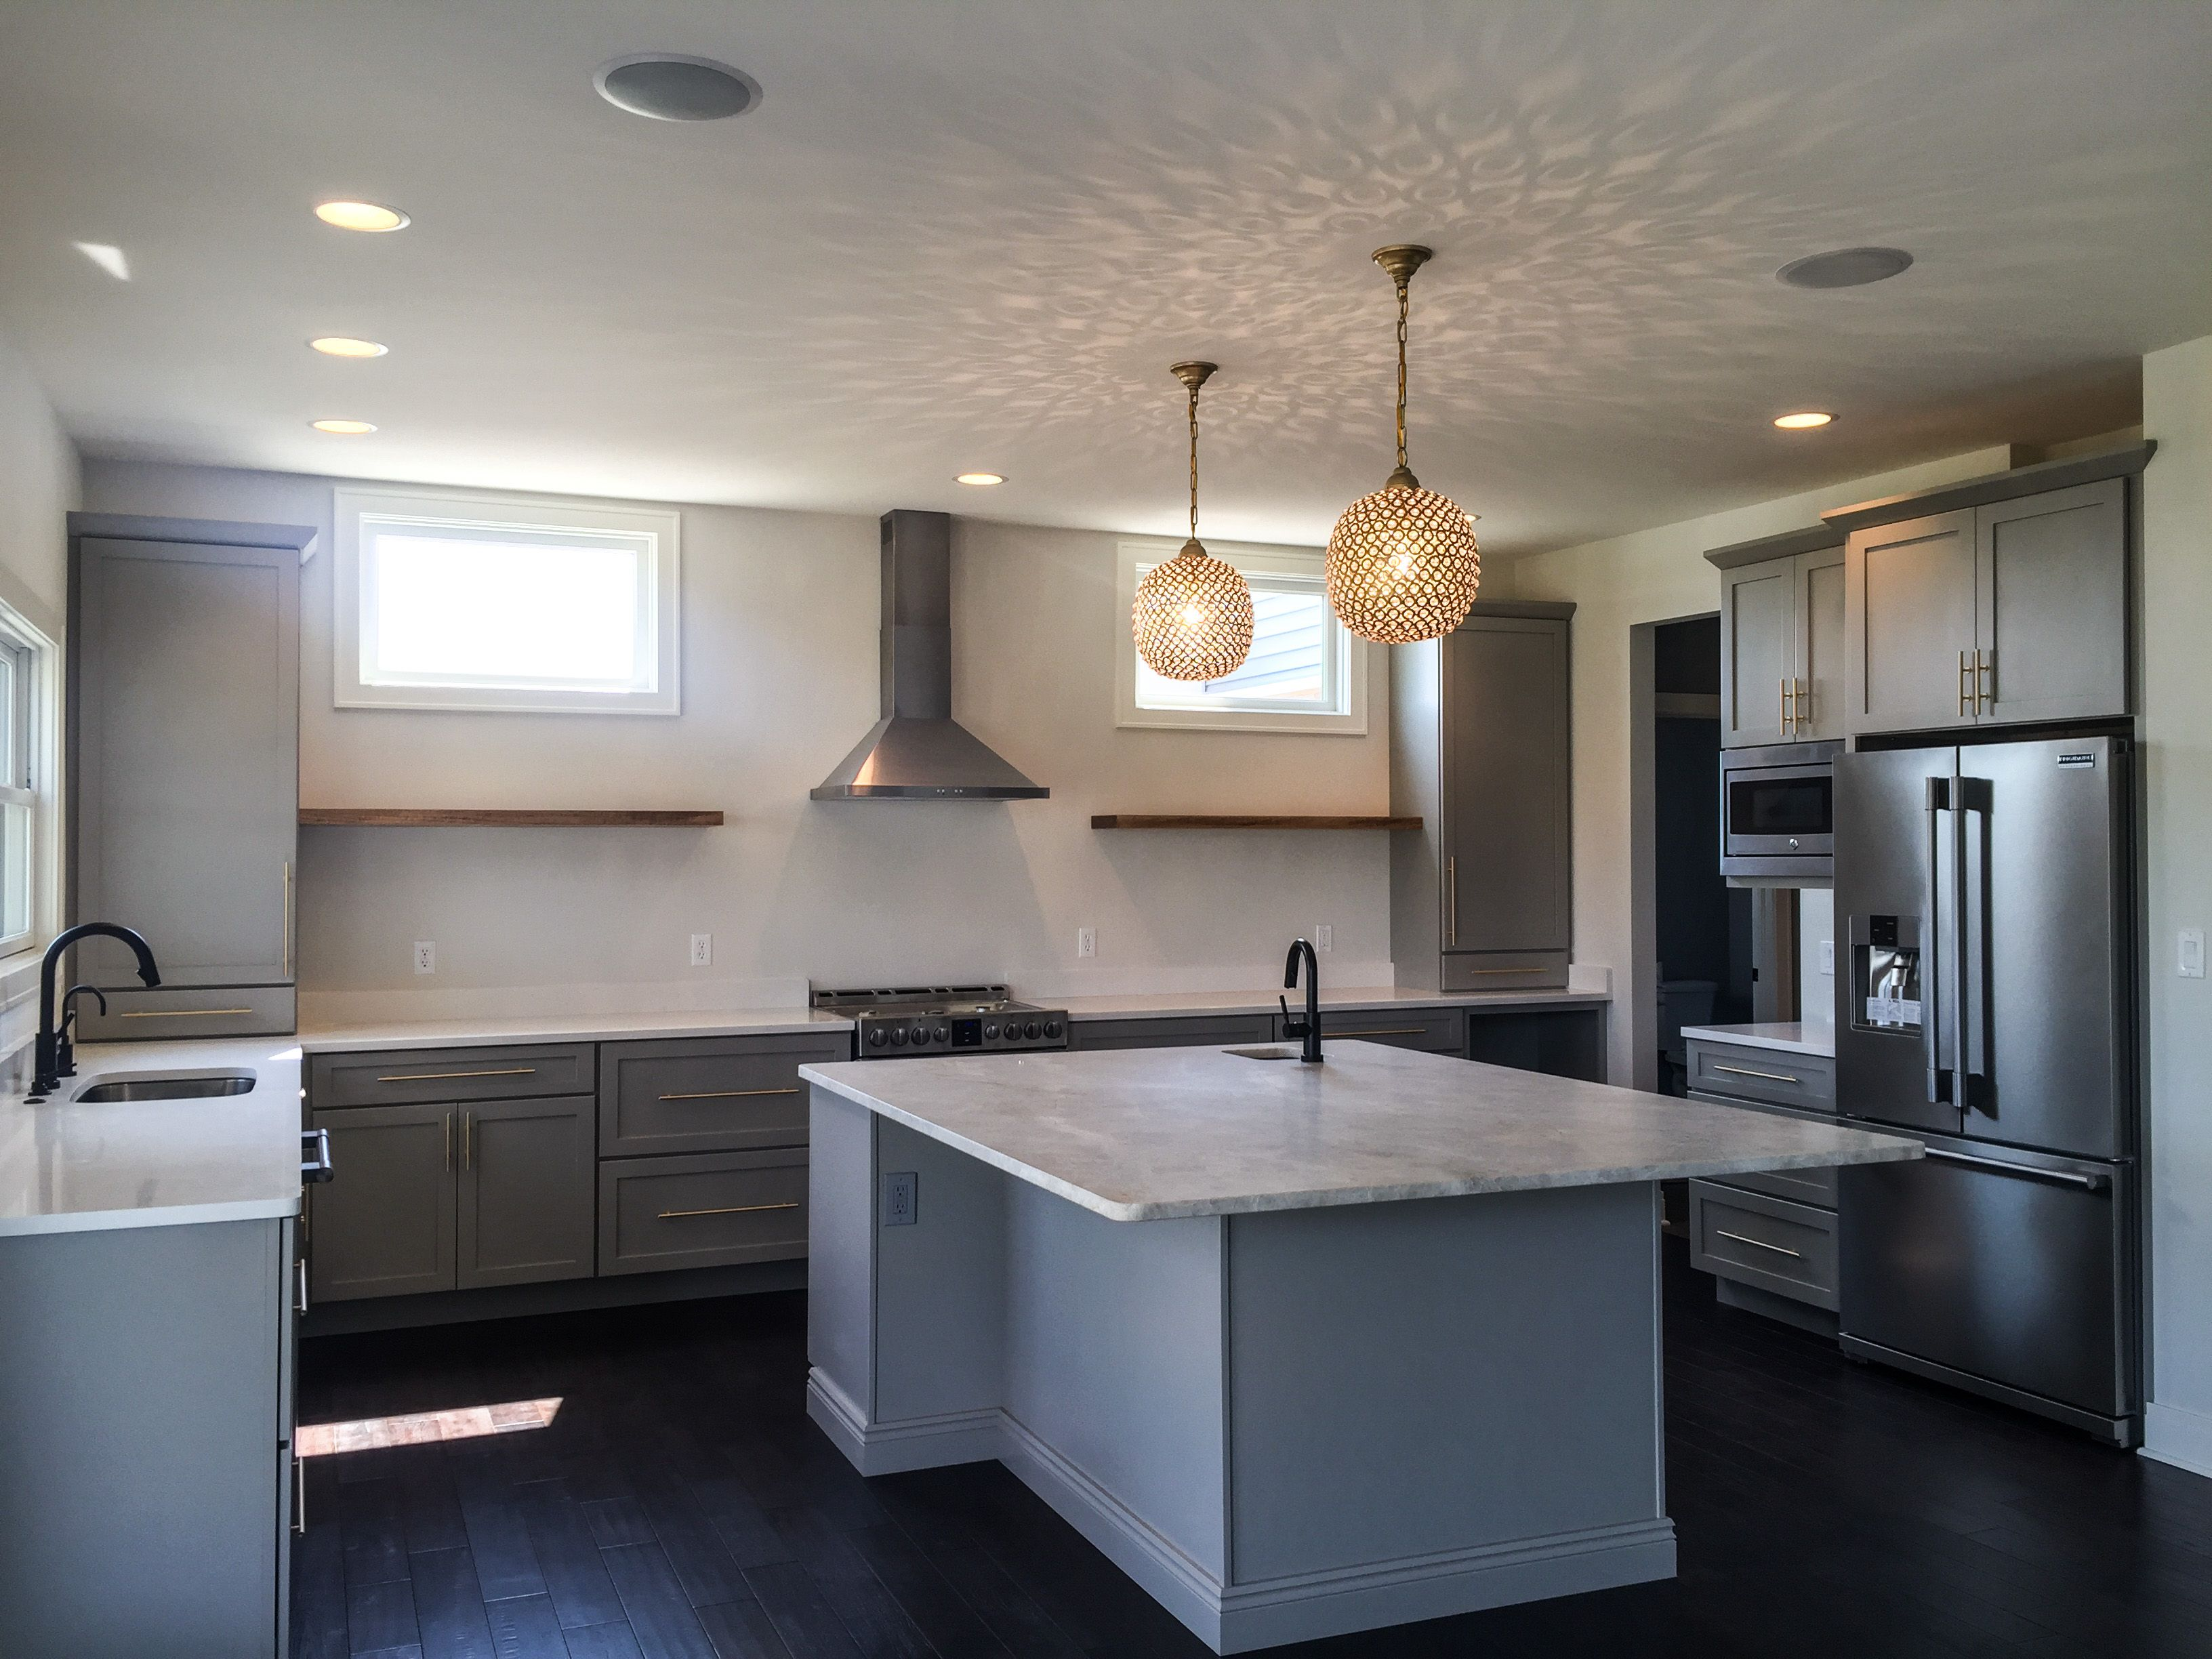 Love This Style | Gray Cabinets with Brass | Floating ...